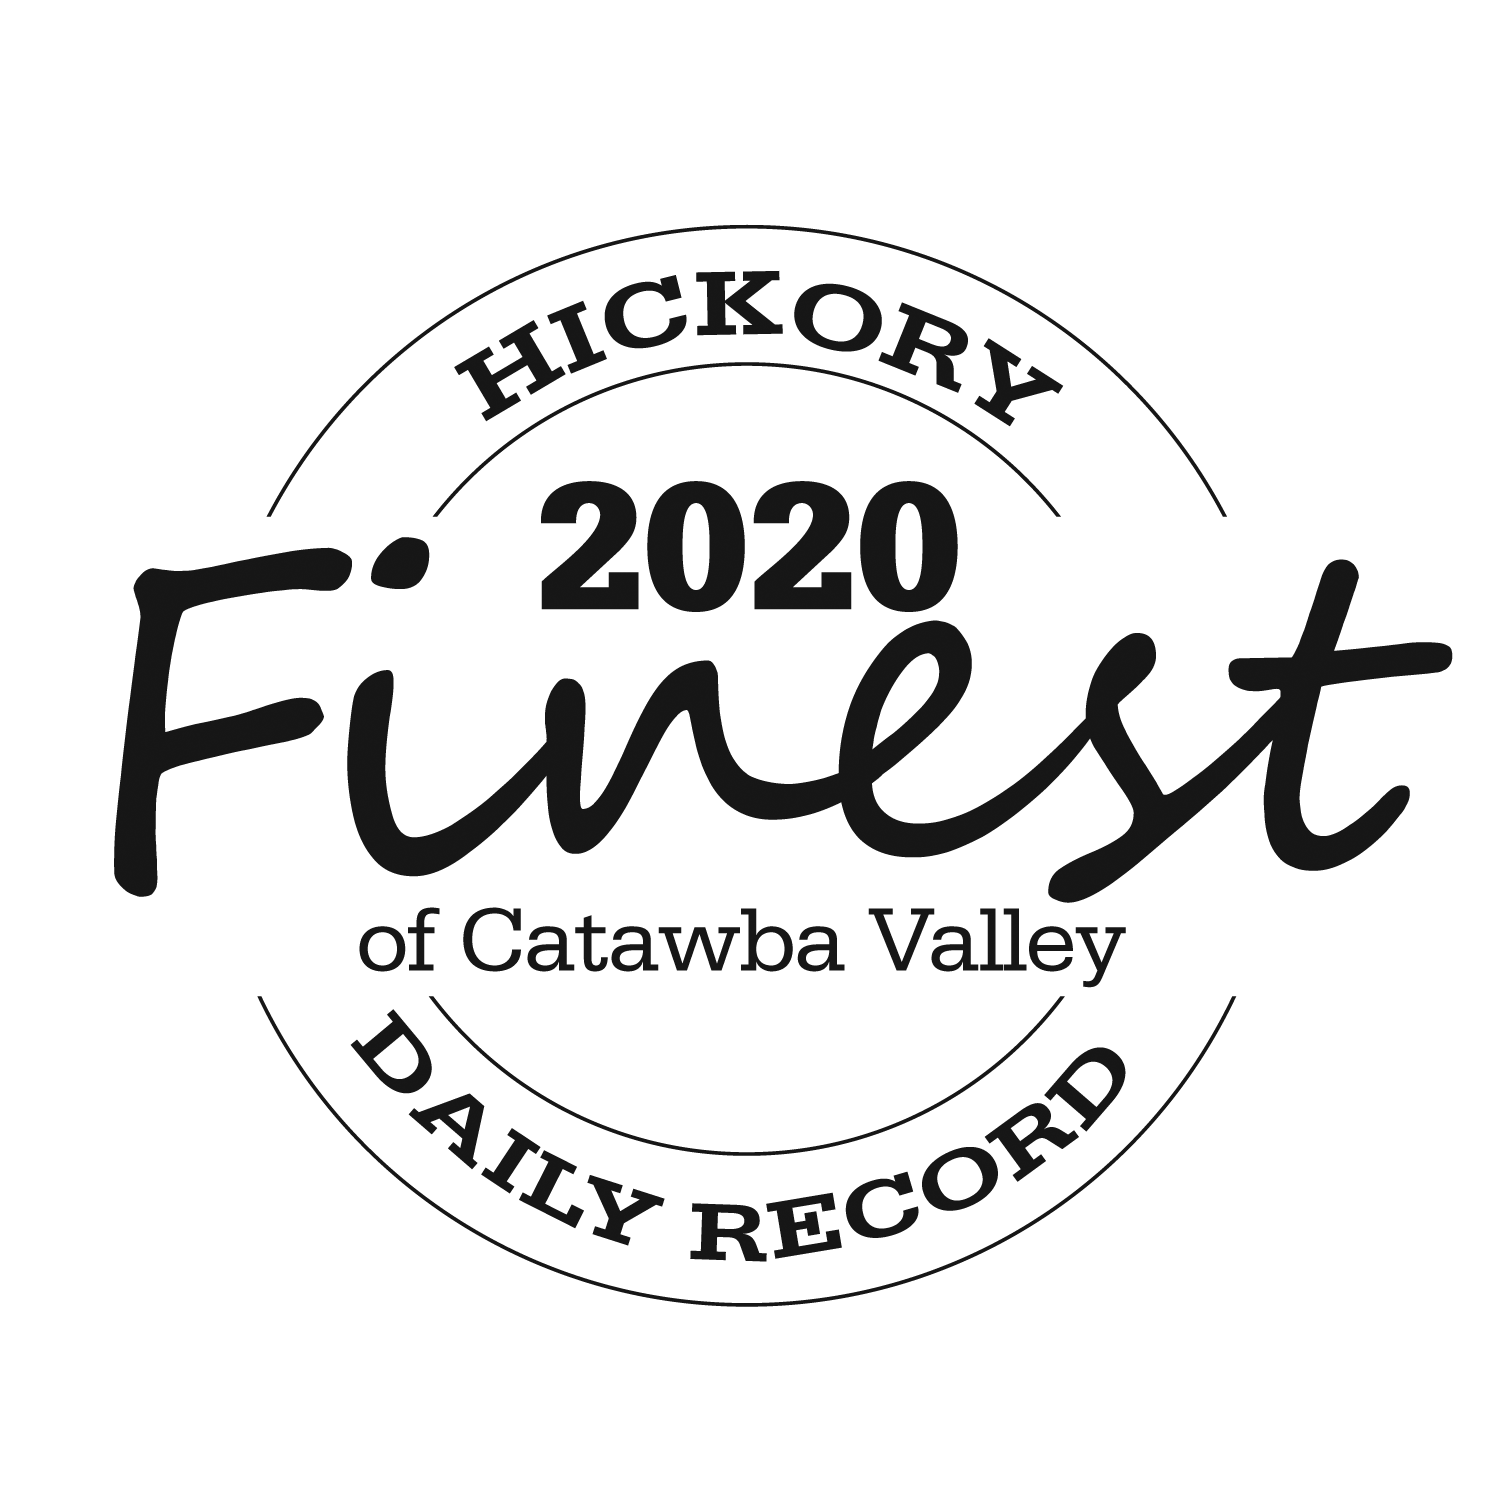 Best of Catawba Valley 2020